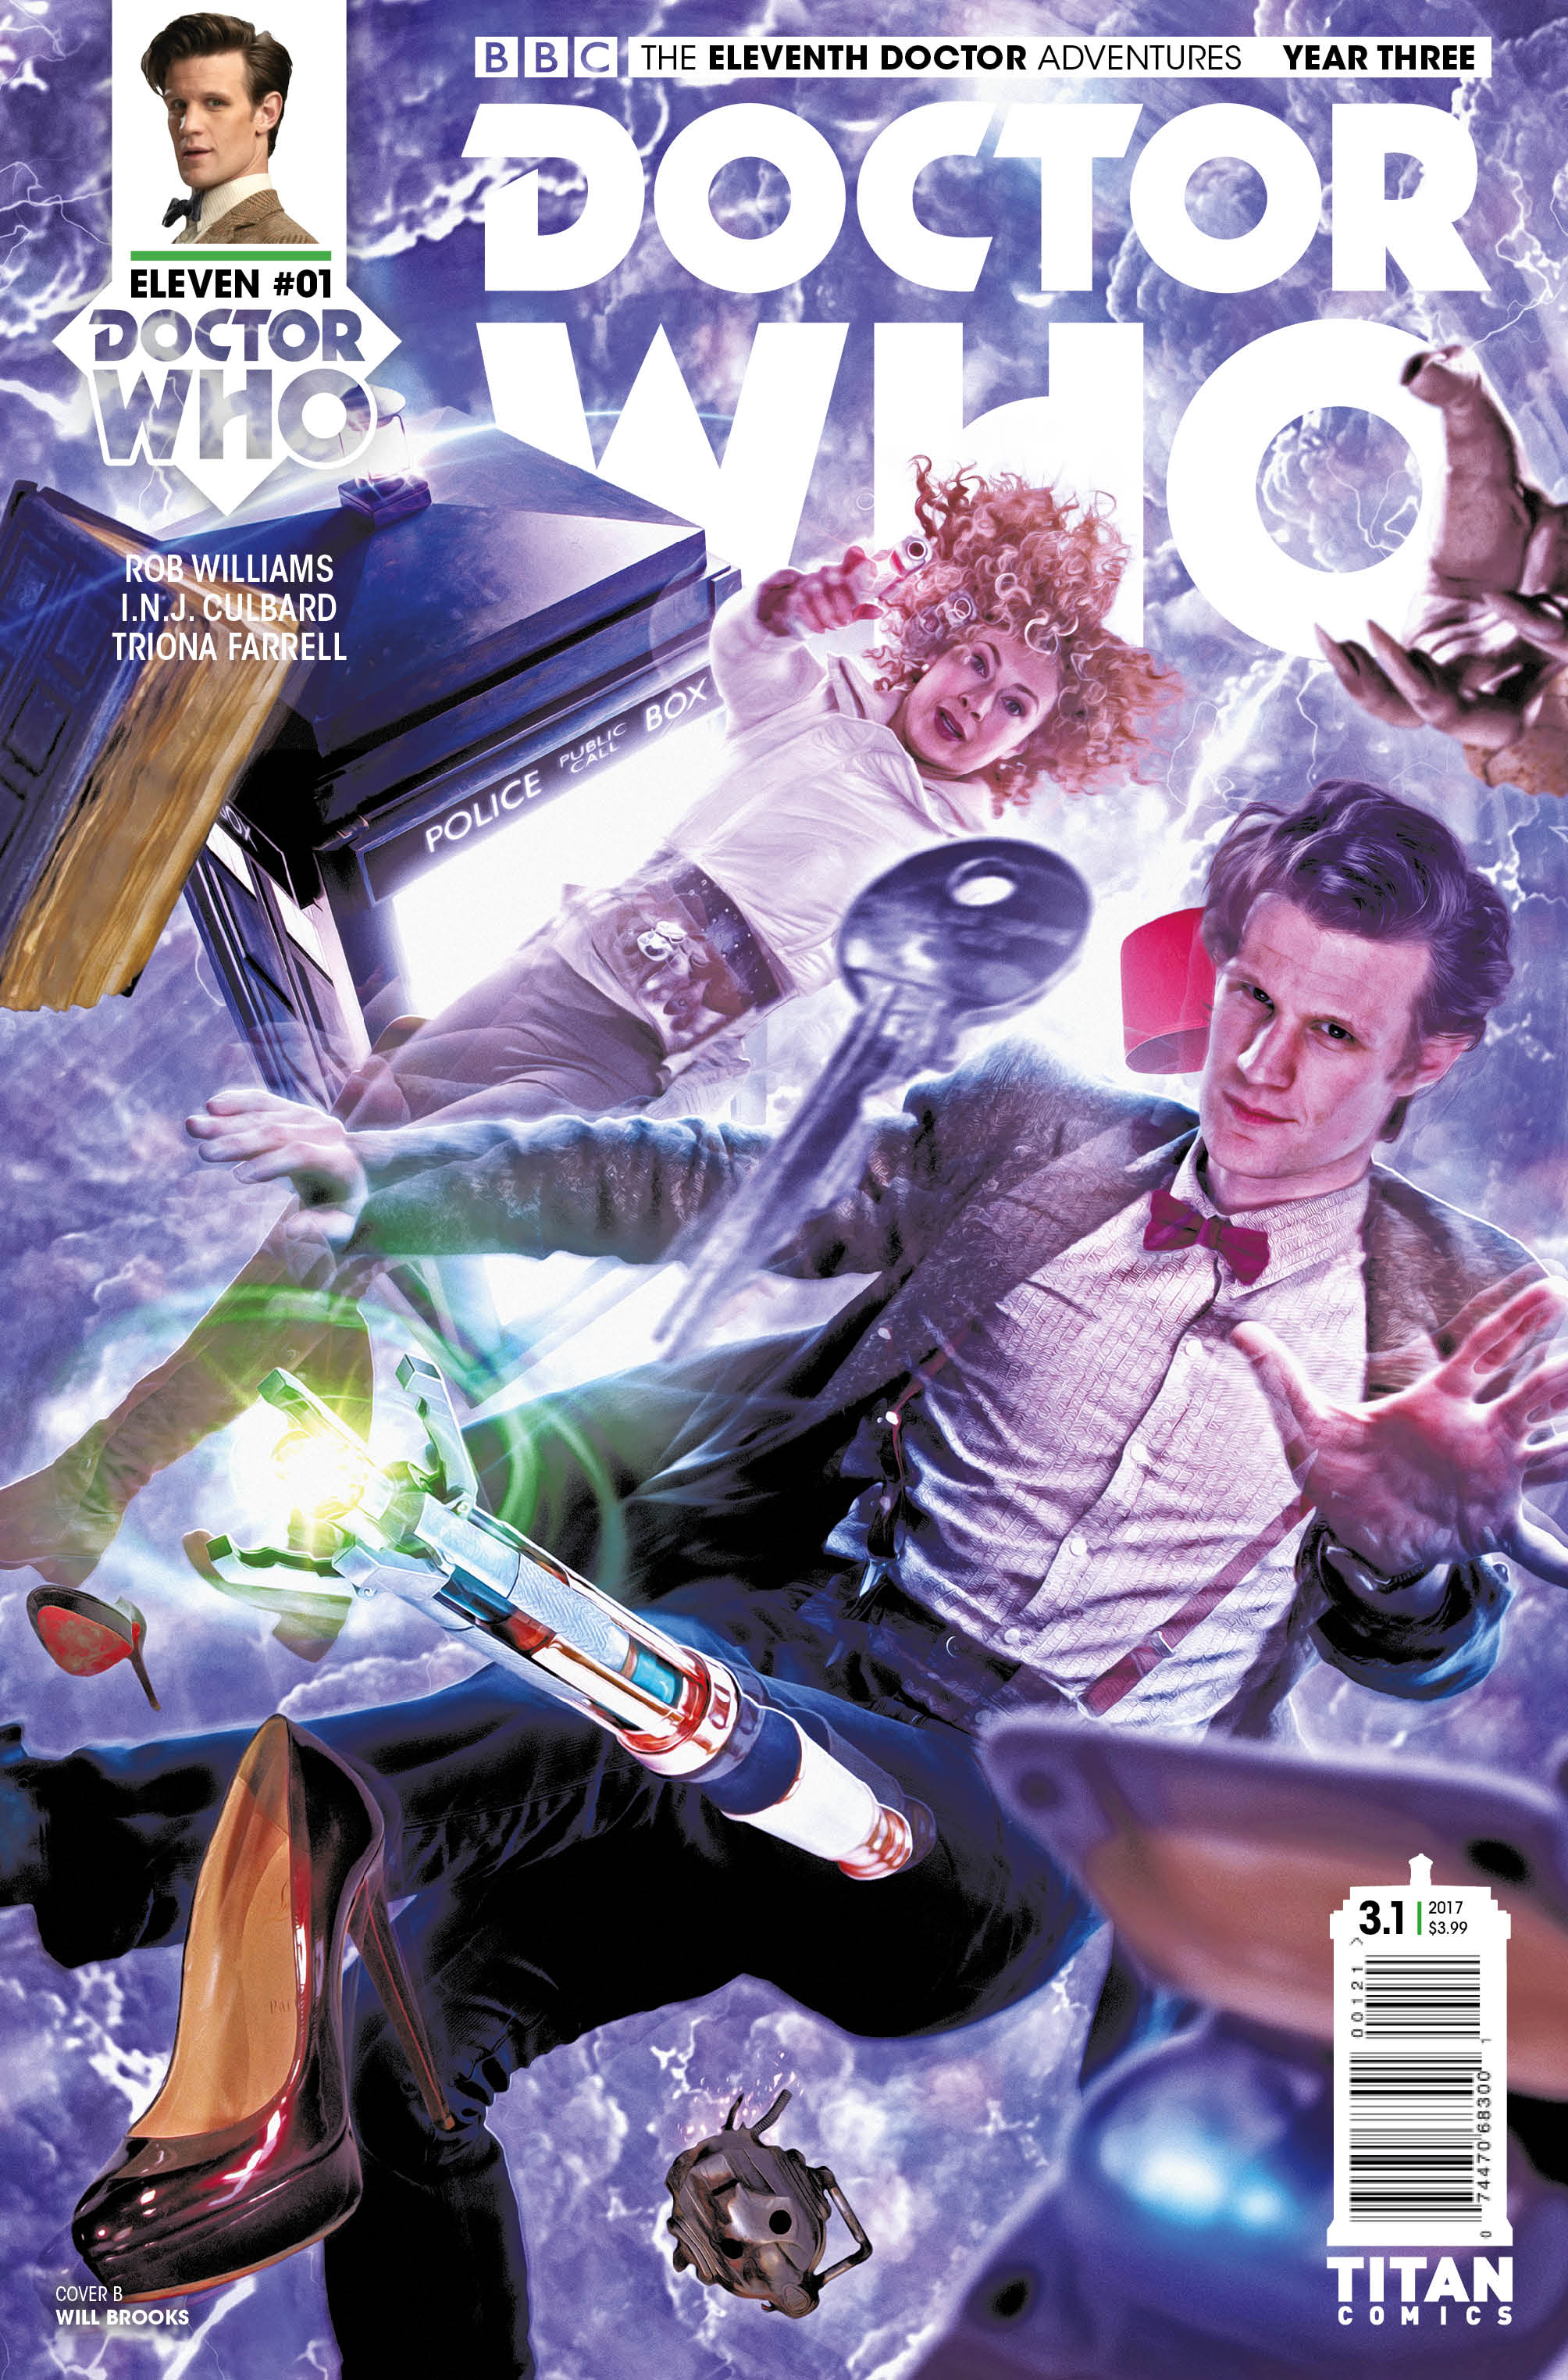 ELEVENTH DOCTOR YEAR THREE #1 Cover_B_Will_Brooks (Credit: Titan)